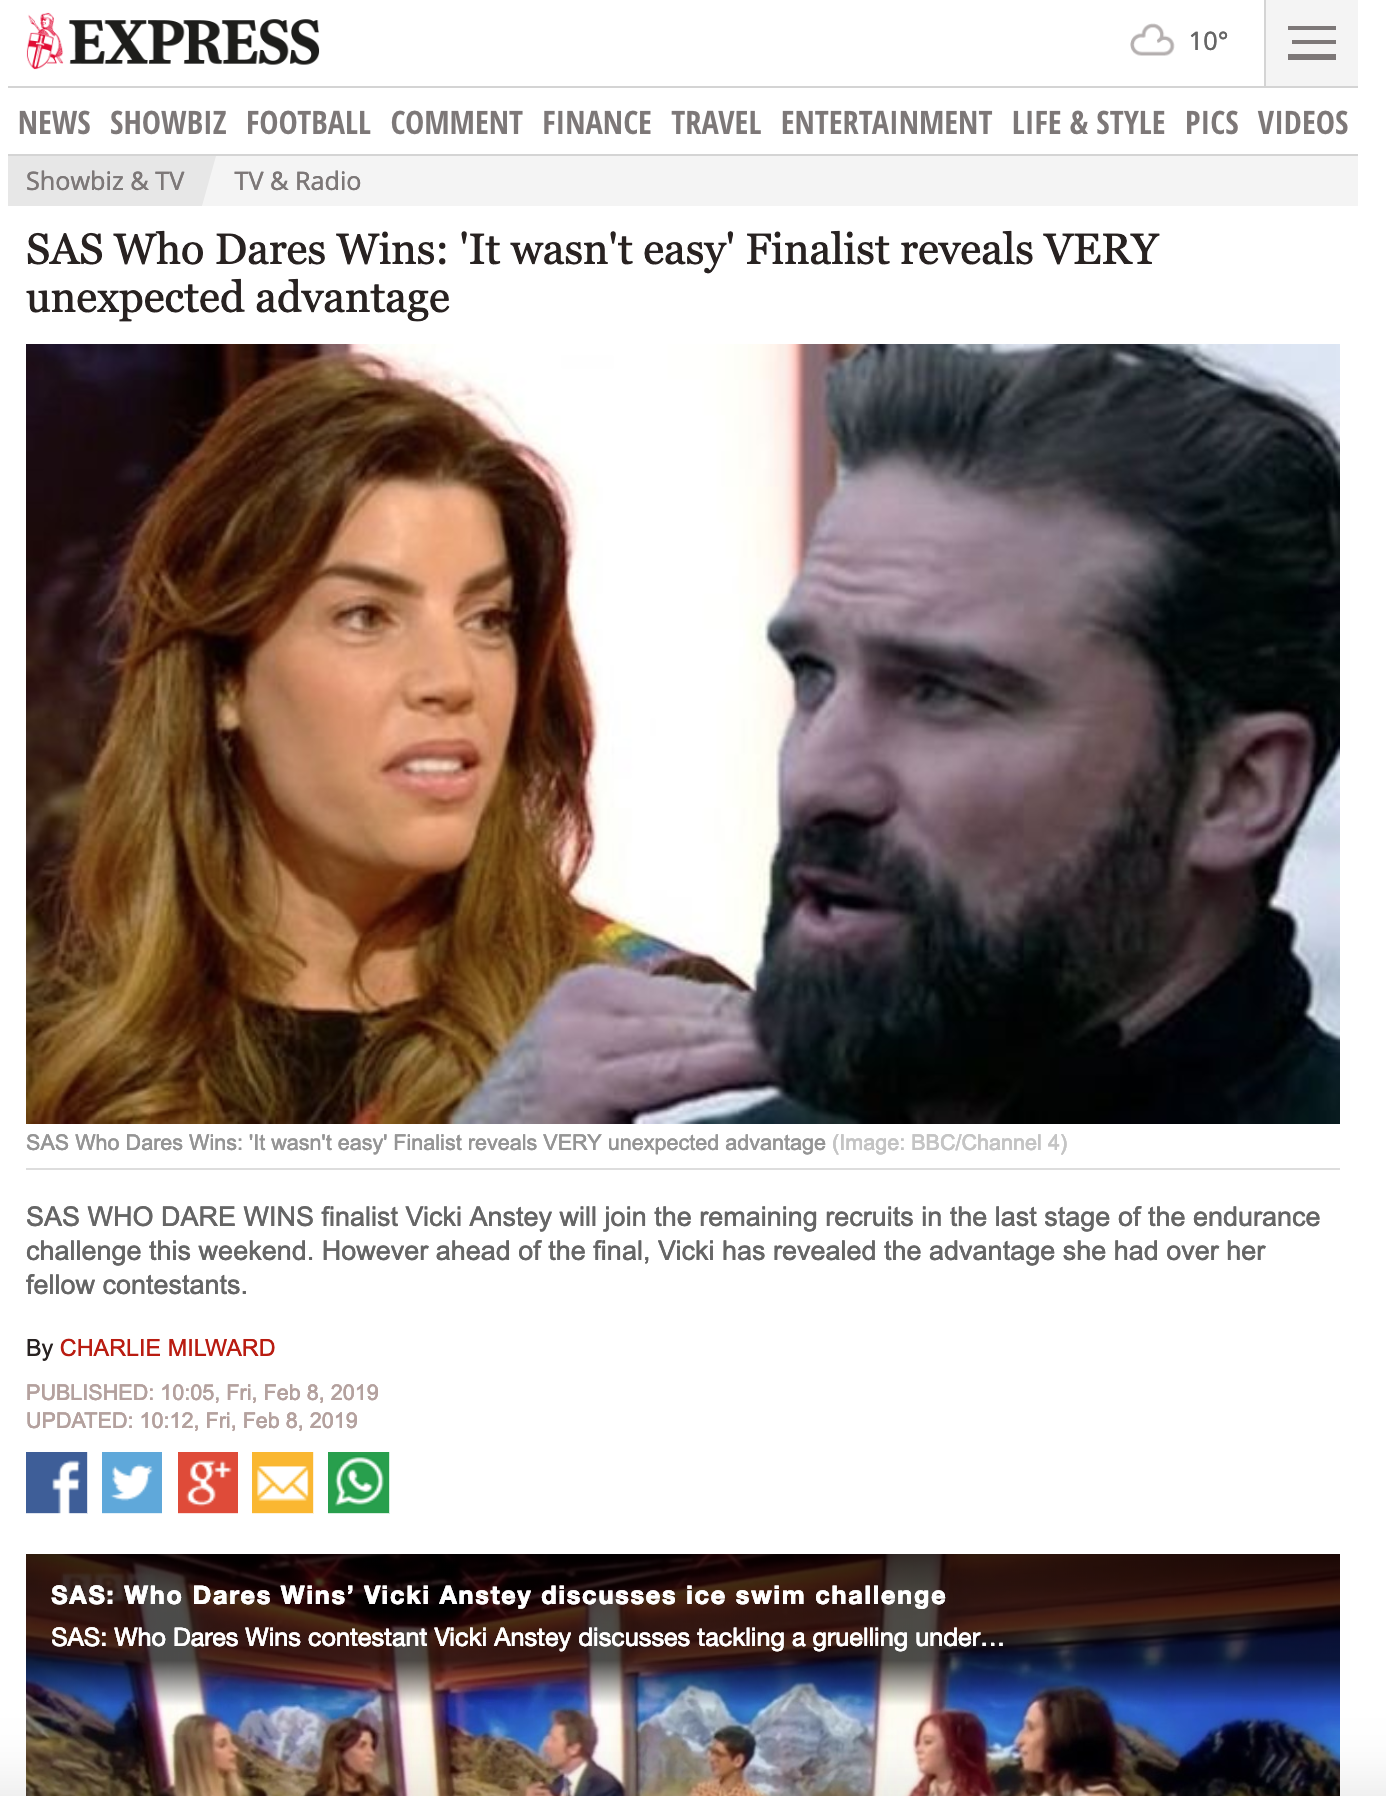 SAS Who Dares Wins: 'It wasn't easy' Finalist reveals VERY unexpected advantage